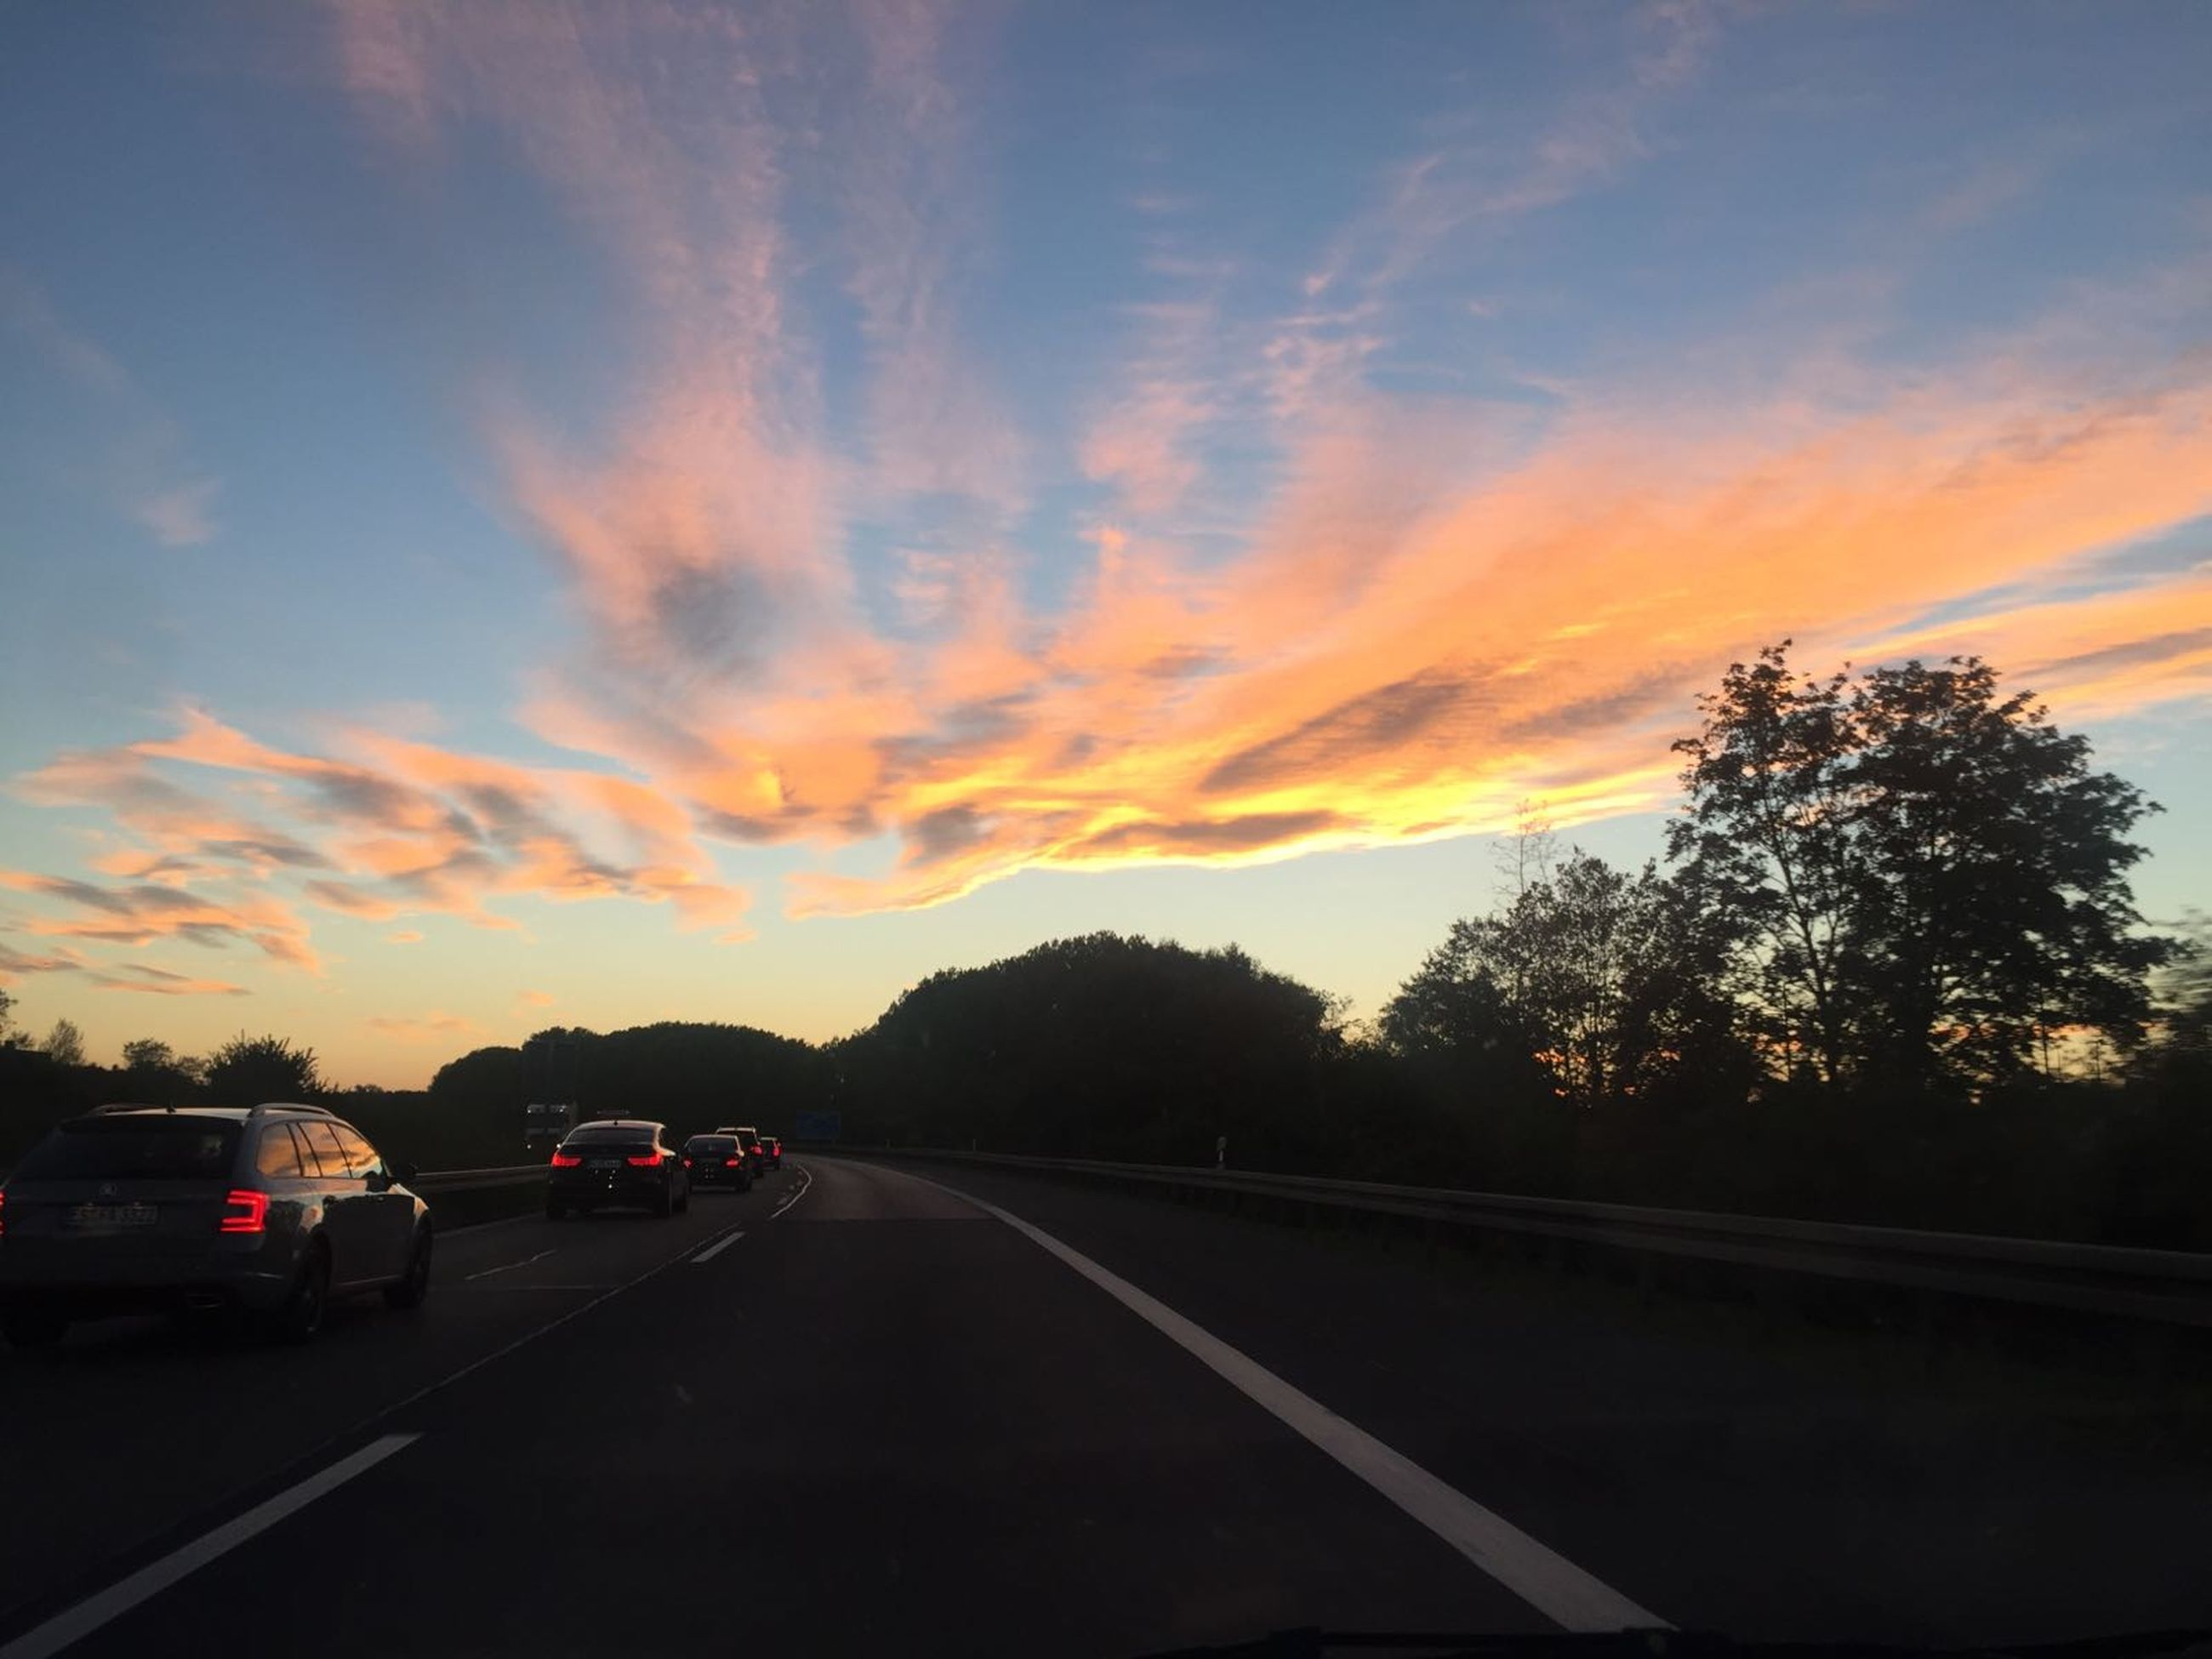 road, transportation, car, sunset, tree, mode of transport, highway, sky, travel, land vehicle, the way forward, nature, cloud - sky, no people, outdoors, scenics, day